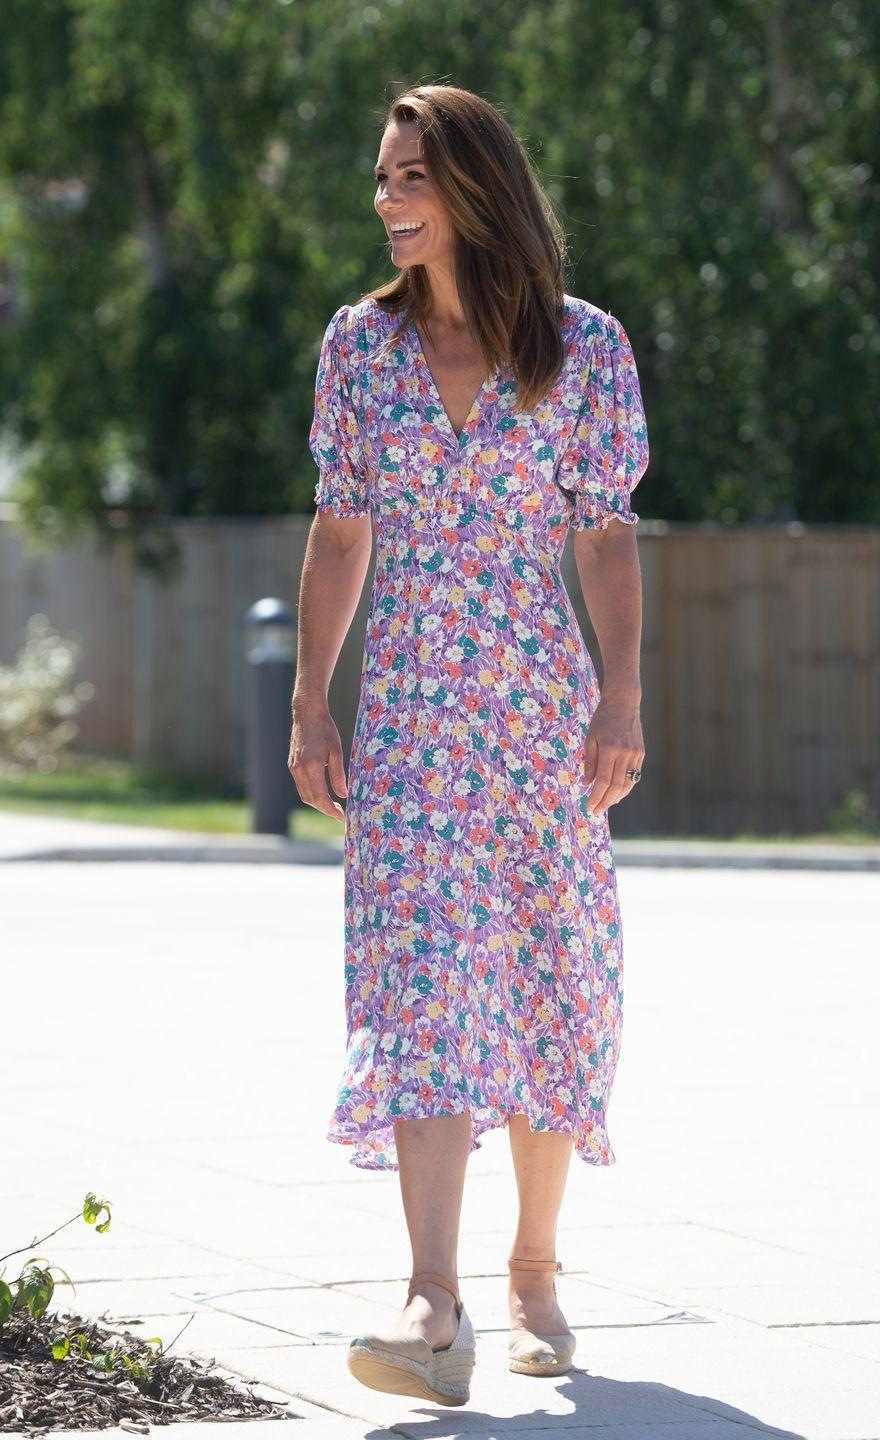 """<p>Duchess Kate looked summery and chic in a lavender, floral <a href=""""https://go.redirectingat.com?id=74968X1596630&url=https%3A%2F%2Fwww.net-a-porter.com%2Fen-us%2Fshop%2Fproduct%2Ffaithfull-the-brand%2Fmarie-louise-floral-print-crepe-midi-dress%2F1233974&sref=https%3A%2F%2Fwww.townandcountrymag.com%2Fstyle%2Ffashion-trends%2Fnews%2Fg1633%2Fkate-middleton-fashion%2F"""" rel=""""nofollow noopener"""" target=""""_blank"""" data-ylk=""""slk:midi dress"""" class=""""link rapid-noclick-resp"""">midi dress </a>by Faithfull the Brand and tan <a href=""""https://go.redirectingat.com?id=74968X1596630&url=https%3A%2F%2Fwww.russellandbromley.co.uk%2Fcoco-nut%2F431707&sref=https%3A%2F%2Fwww.townandcountrymag.com%2Fstyle%2Ffashion-trends%2Fnews%2Fg1633%2Fkate-middleton-fashion%2F"""" rel=""""nofollow noopener"""" target=""""_blank"""" data-ylk=""""slk:Russell & Bromley espadrilles"""" class=""""link rapid-noclick-resp"""">Russell & Bromley espadrilles</a>. Kate wore this outfit to <a href=""""https://www.townandcountrymag.com/society/tradition/a32990521/kate-middleton-prince-louis-green-thumb-comment/"""" rel=""""nofollow noopener"""" target=""""_blank"""" data-ylk=""""slk:visit her patronage"""" class=""""link rapid-noclick-resp"""">visit her patronage</a>, the Nook in Framlingham Earl, Norfolk, one of three East Anglia's Children's Hospices.</p><p><a class=""""link rapid-noclick-resp"""" href=""""https://go.redirectingat.com?id=74968X1596630&url=https%3A%2F%2Fwww.saksfifthavenue.com%2Fsearch%2FEndecaSearch.jsp%3FbmText%3DSearchString%26N_Dim%3D0%26Ntk%3DEntire%2BSite%26Ntt%3DFaithfull%2Bthe%2BBrand&sref=https%3A%2F%2Fwww.townandcountrymag.com%2Fstyle%2Ffashion-trends%2Fnews%2Fg1633%2Fkate-middleton-fashion%2F"""" rel=""""nofollow noopener"""" target=""""_blank"""" data-ylk=""""slk:Shop Faithfull the Brand"""">Shop Faithfull the Brand</a></p>"""